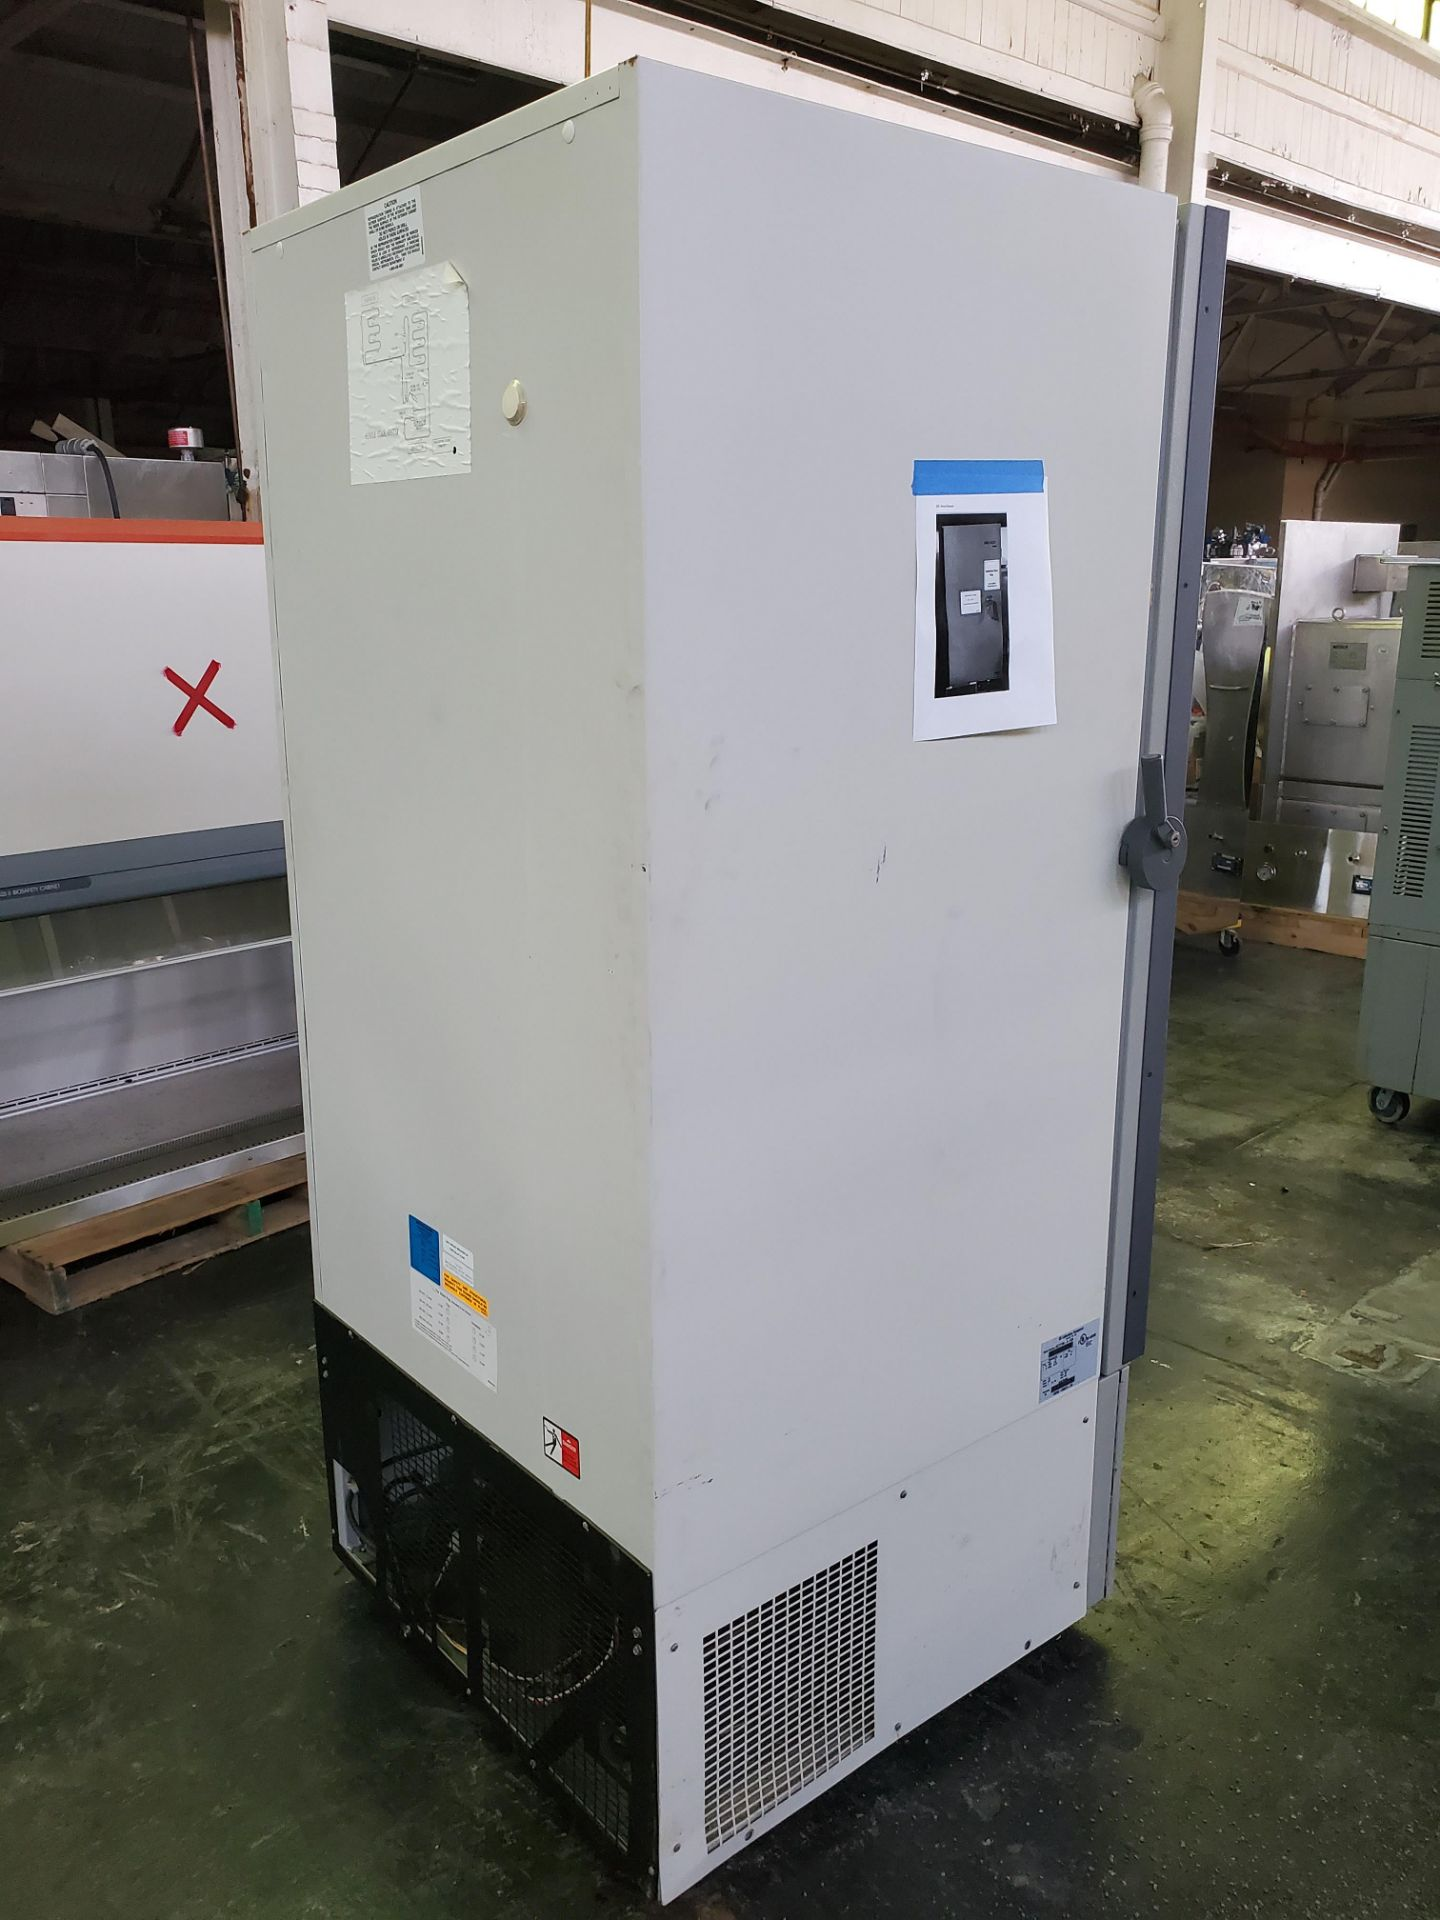 Revco/GS Laboratory Equipment Freezer, model ULT1740-3-A34 - Image 2 of 7